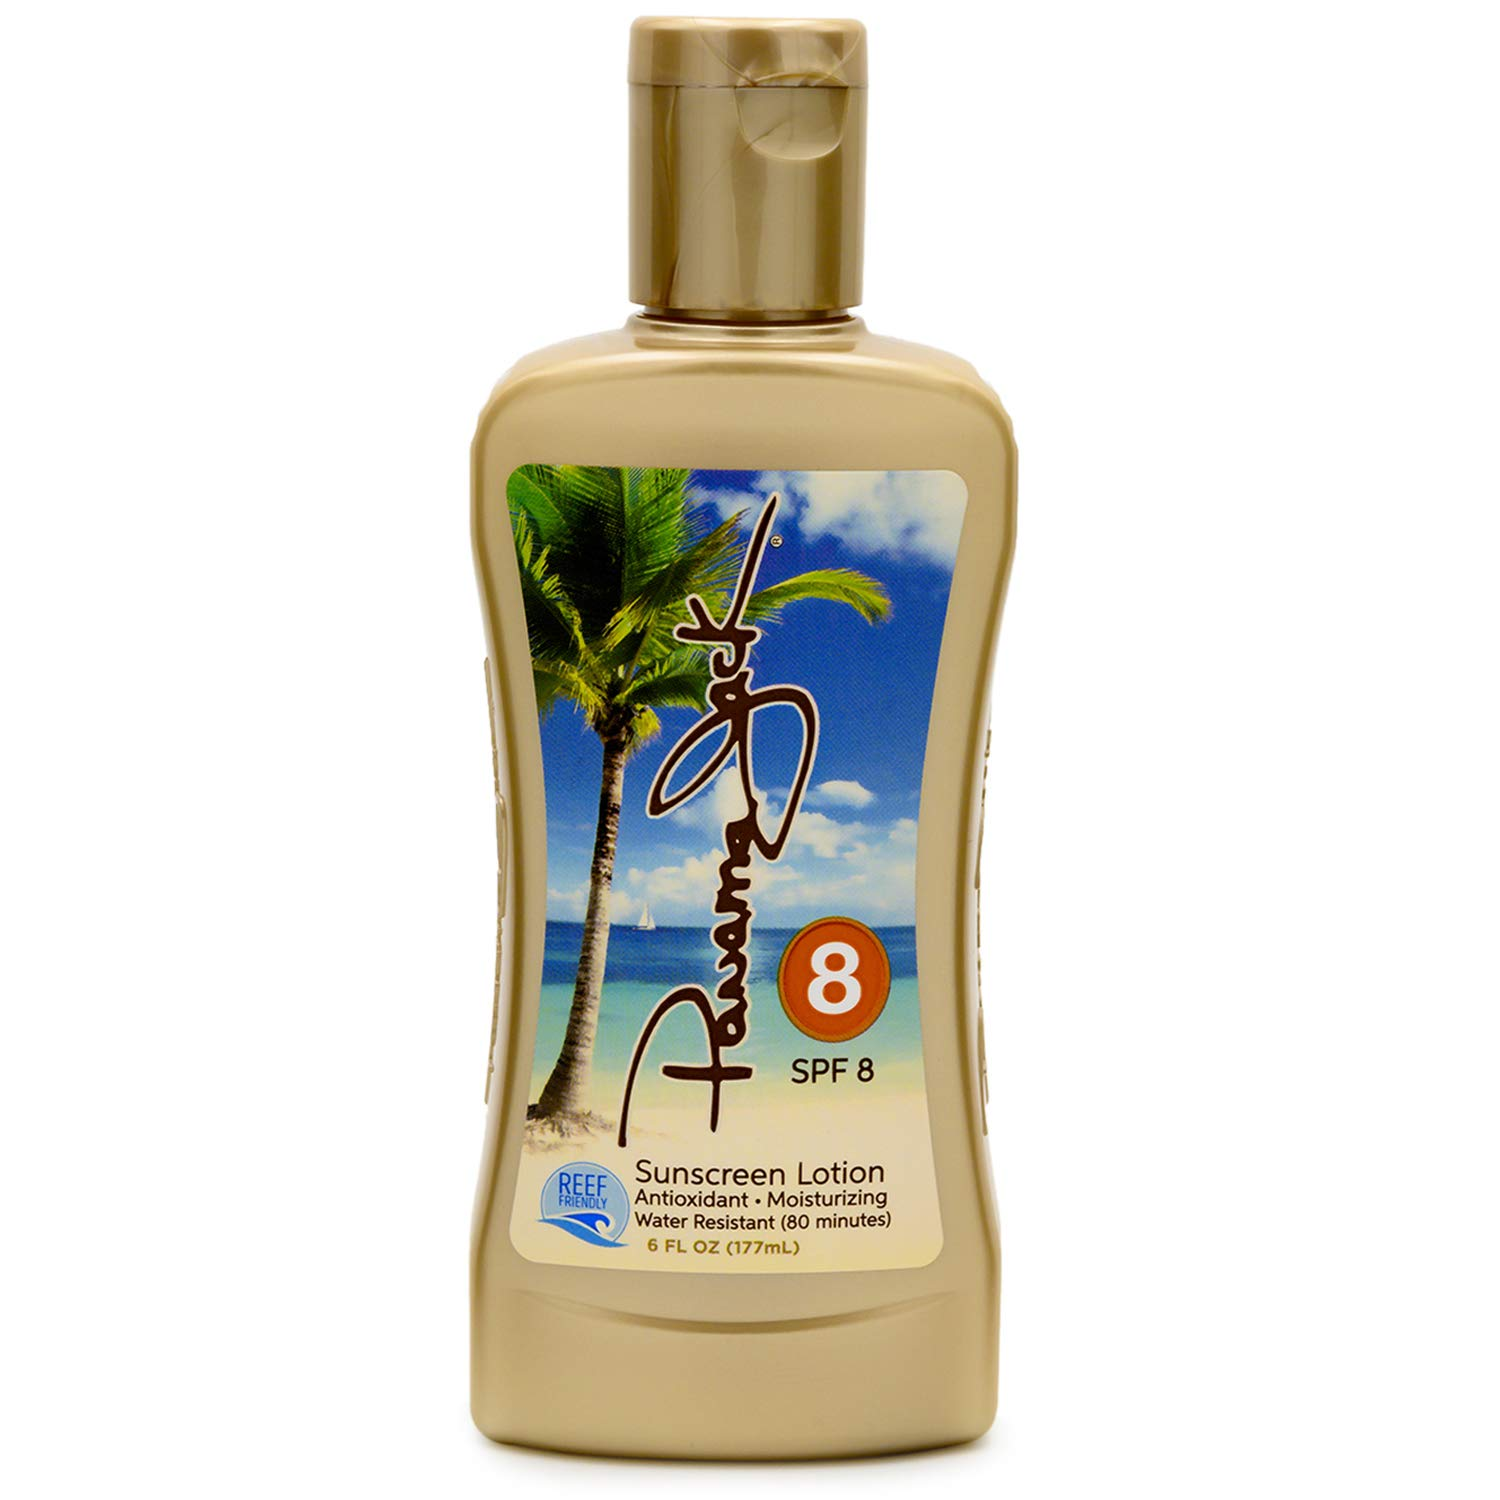 Panama Jack Sunscreen Tanning Lotion - SPF 8, Reef-Friendly, PABA, Paraben, Gluten & Cruelty Free, Antioxidant Moisturizing Formula, Water Resistant (80 Minutes), 6 FL OZ (Pack of 1)